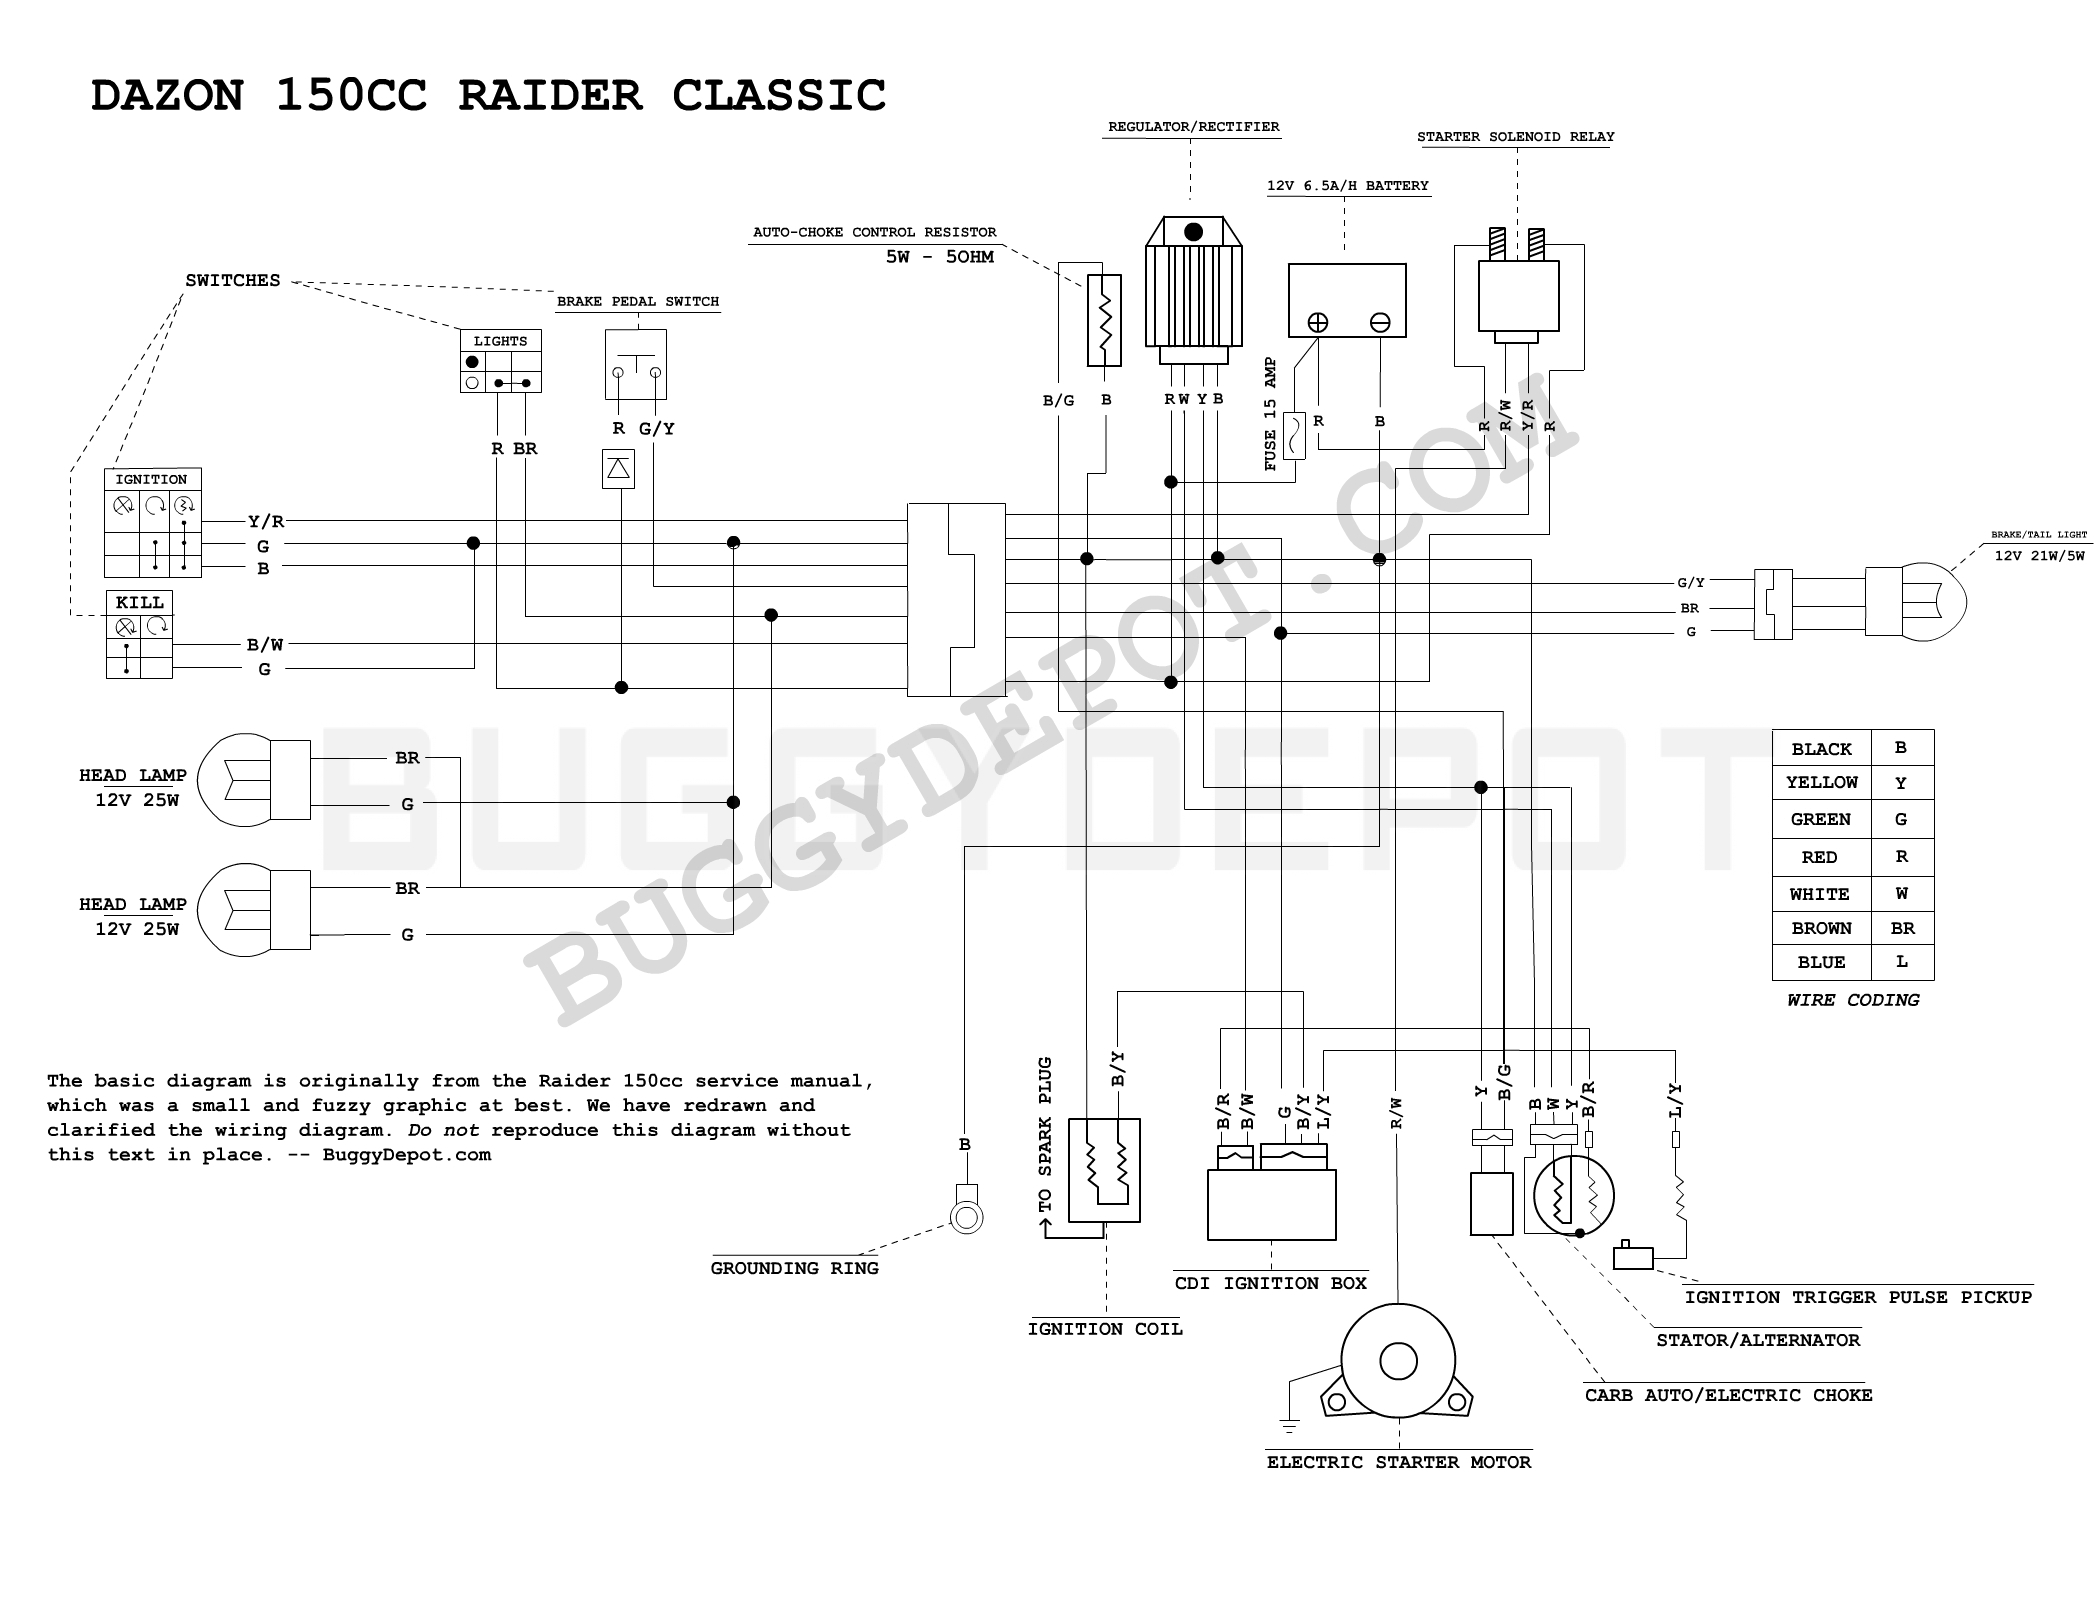 article_33_1278205207 crossfire 150r wiring diagram buggy depot technical center  at sewacar.co